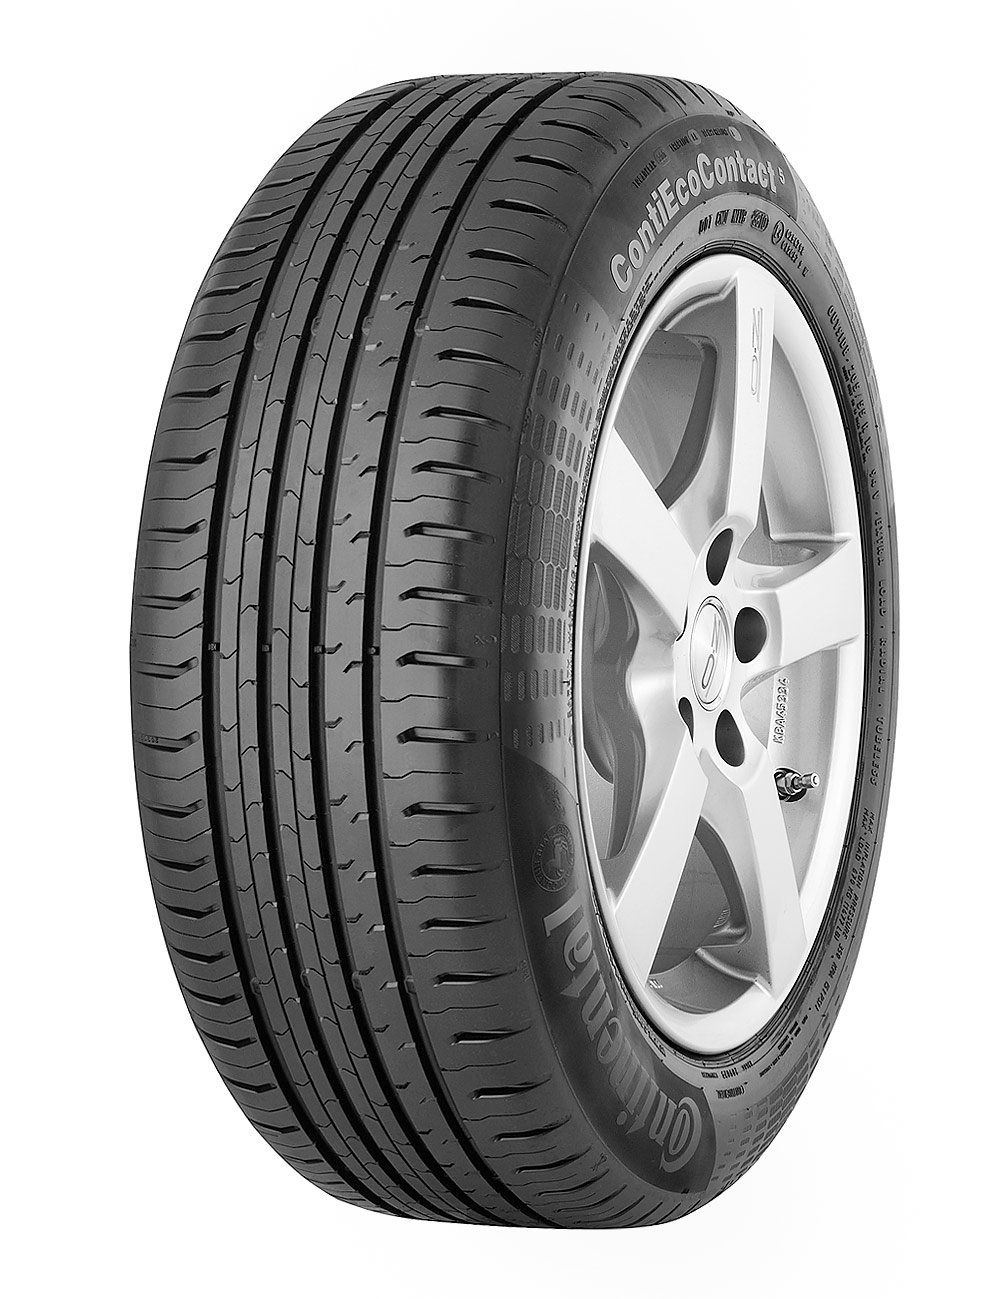 Anvelopa vara CONTINENTAL ECO CONTACT 5 175/65 R14 86T